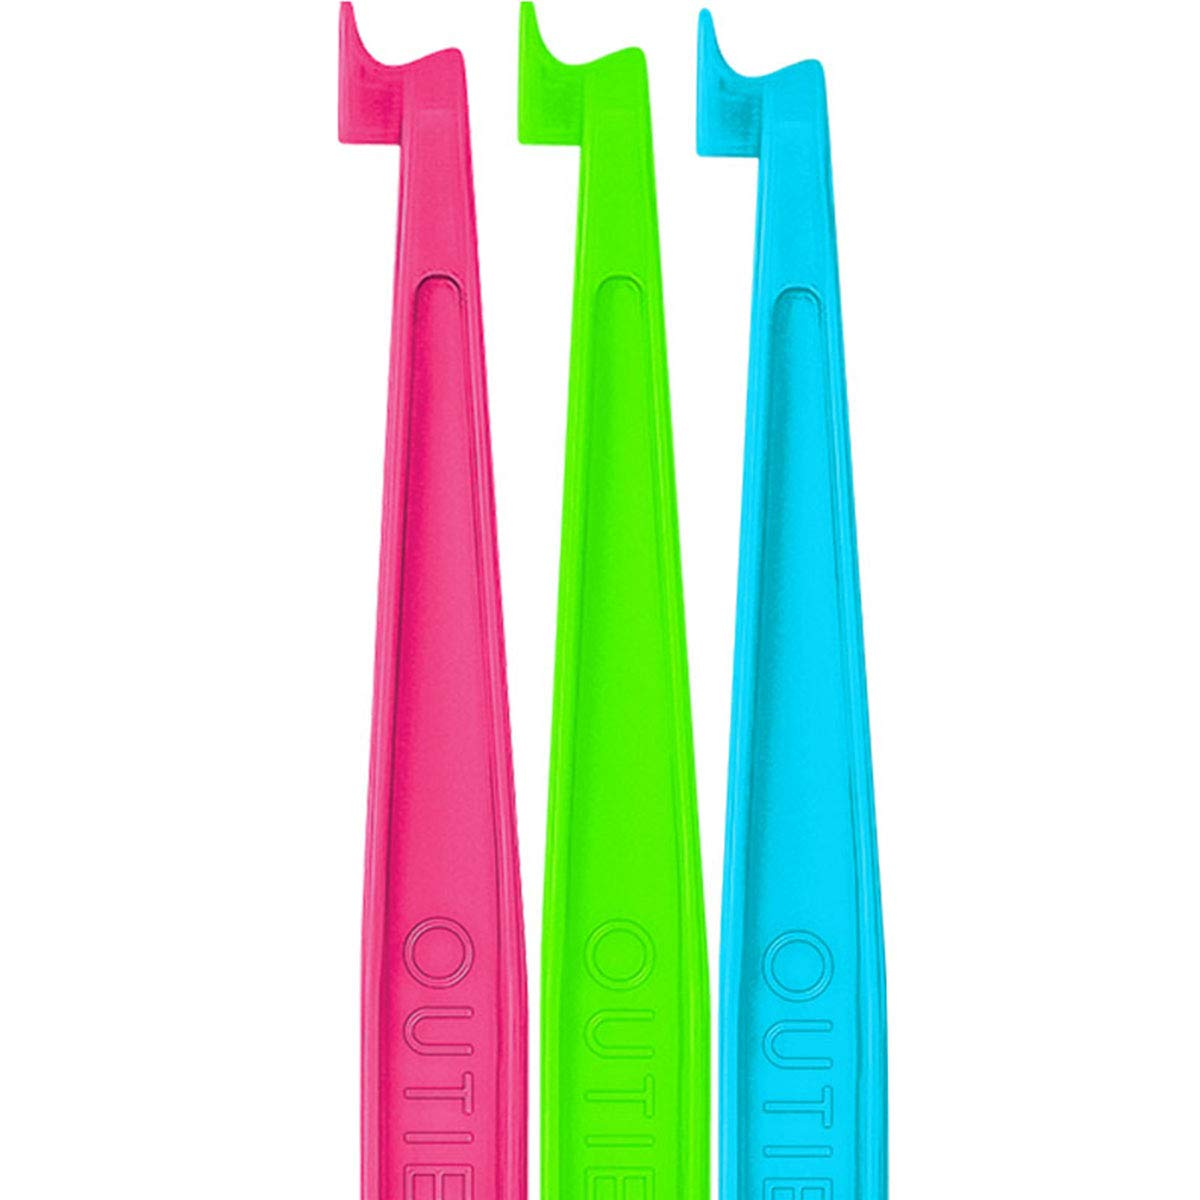 Invisible Braces - Aligner Removal Tool - Outie Tool by Outie Tool (Image #5)